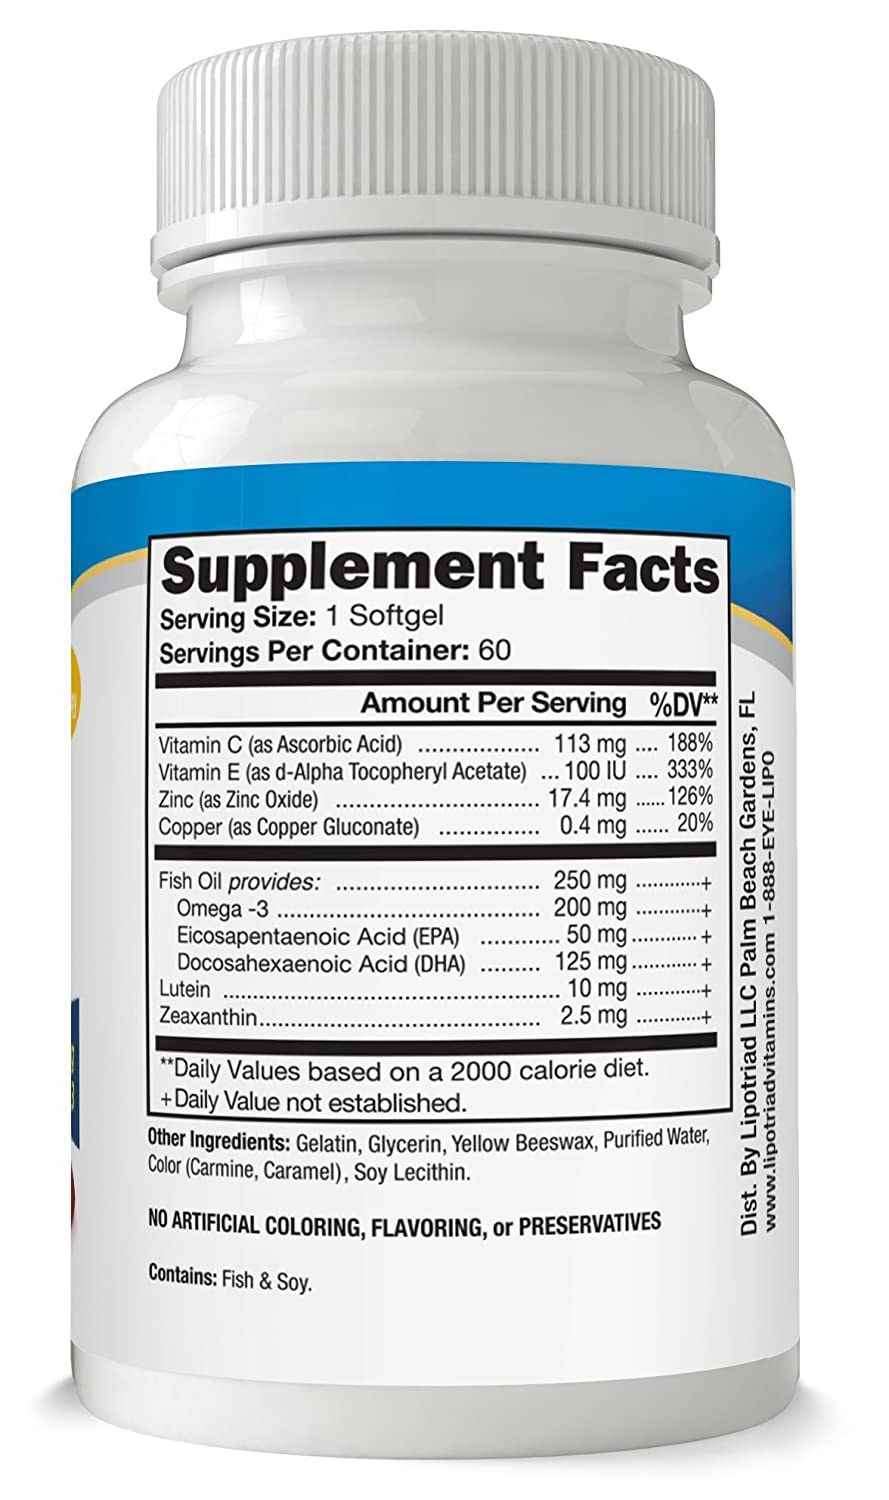 Amazon.com: Lipotriad Adult 50+ Eye Vitamin and Mineral Supplement w/10mg  Lutein, Zeaxanthin, Omega 3, Vitamin C, E, Zinc Copper, 1 Per Day, 2mo  Supply, ...